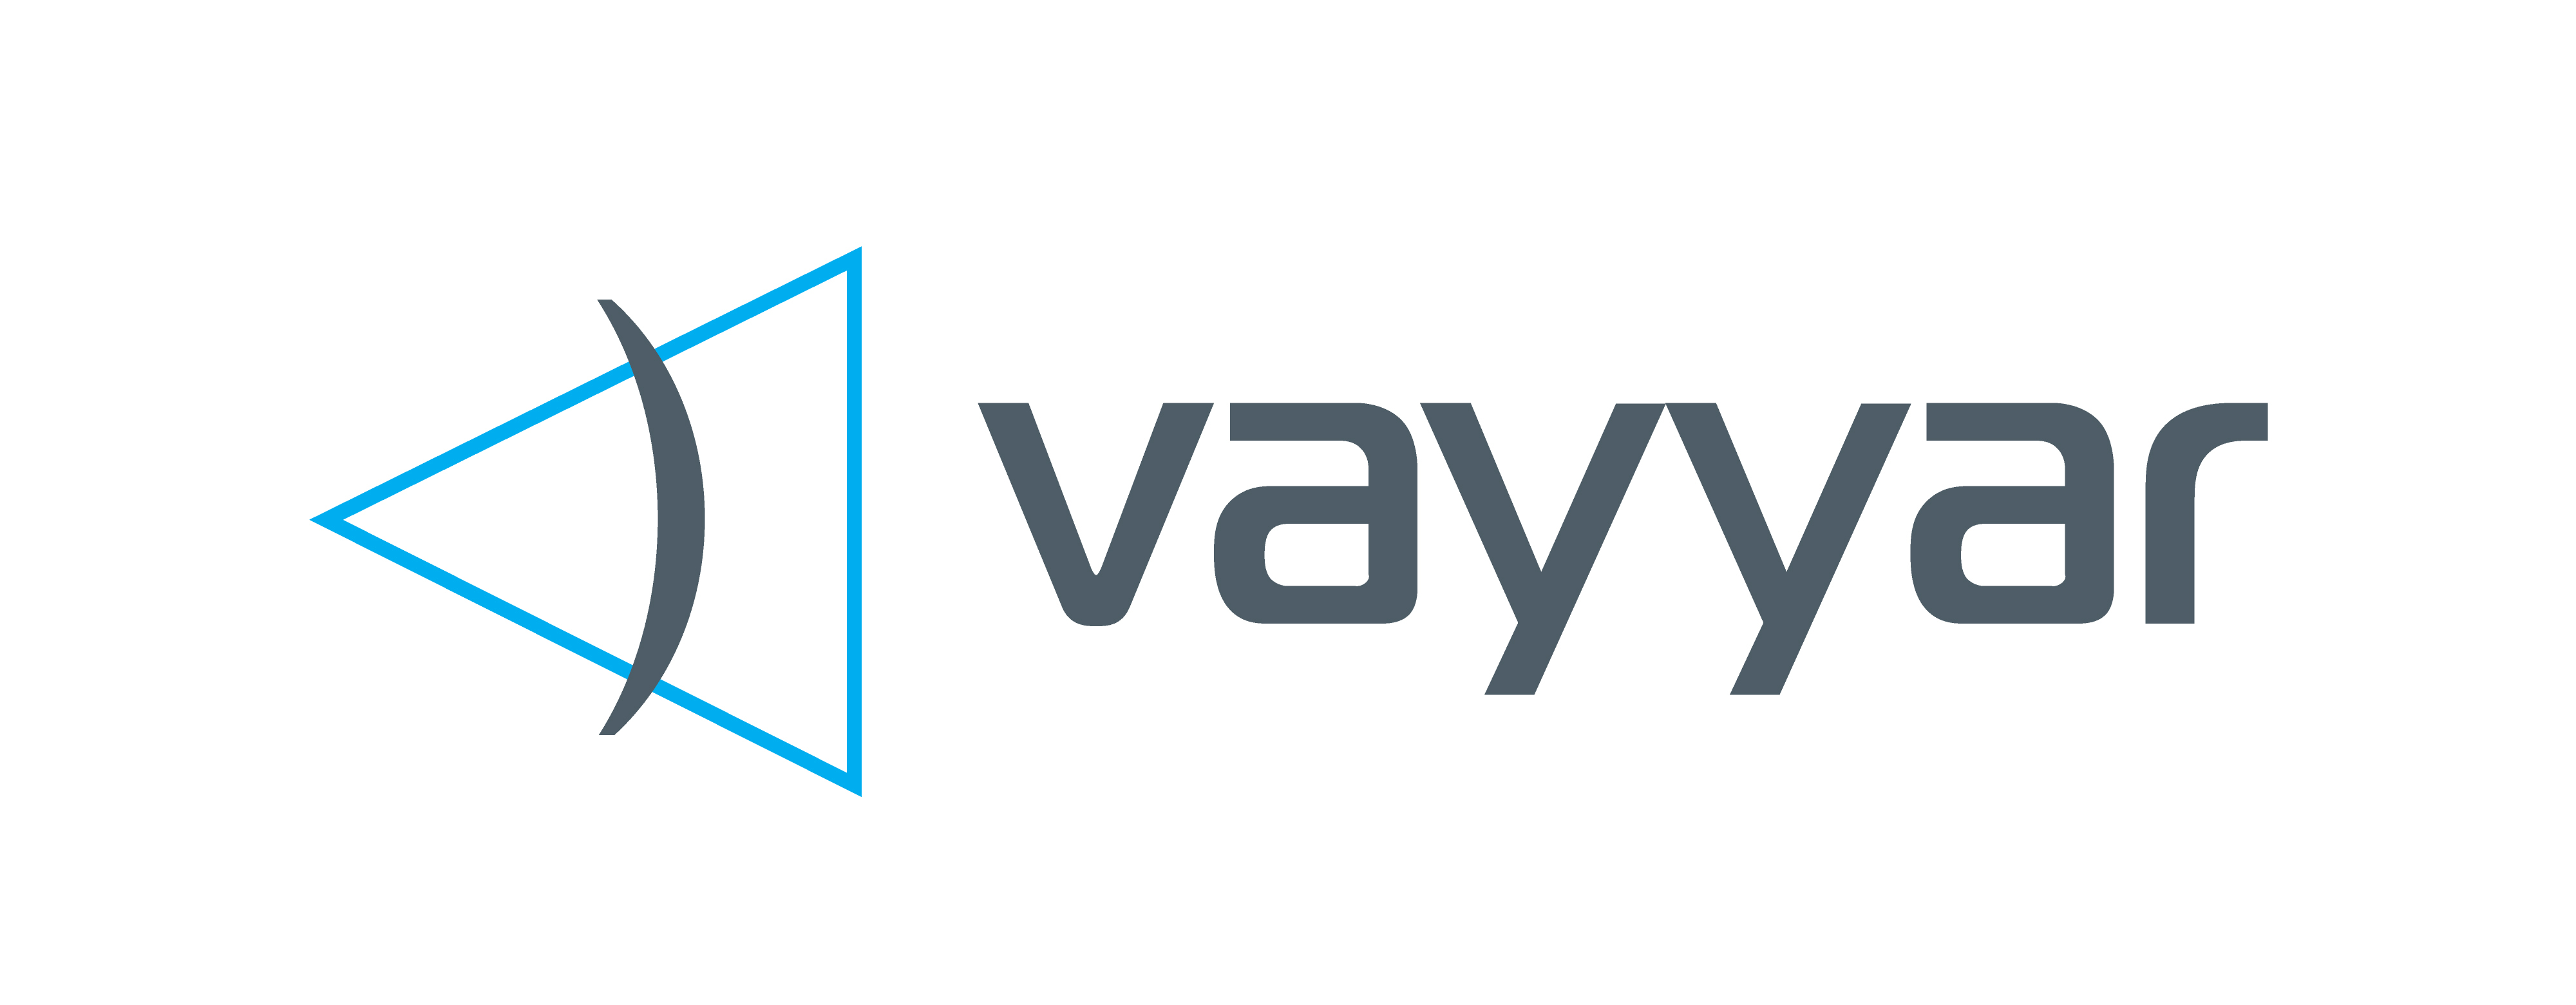 Vayyar Launches the First Single-Chip Imaging Radar to Enable High